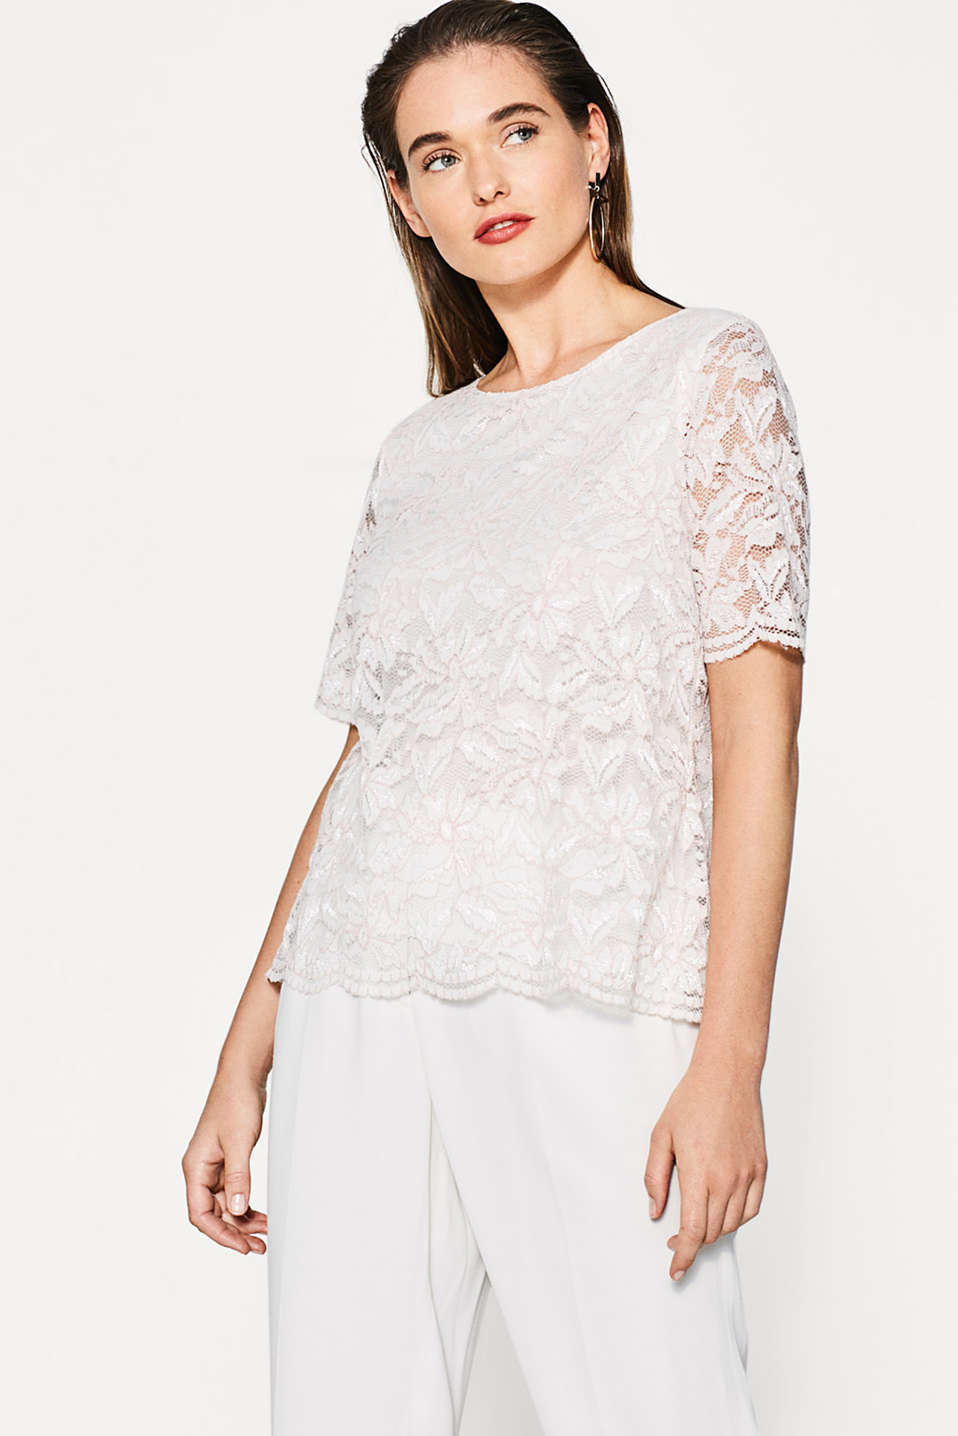 Esprit - Two-in-one lace top with back slit